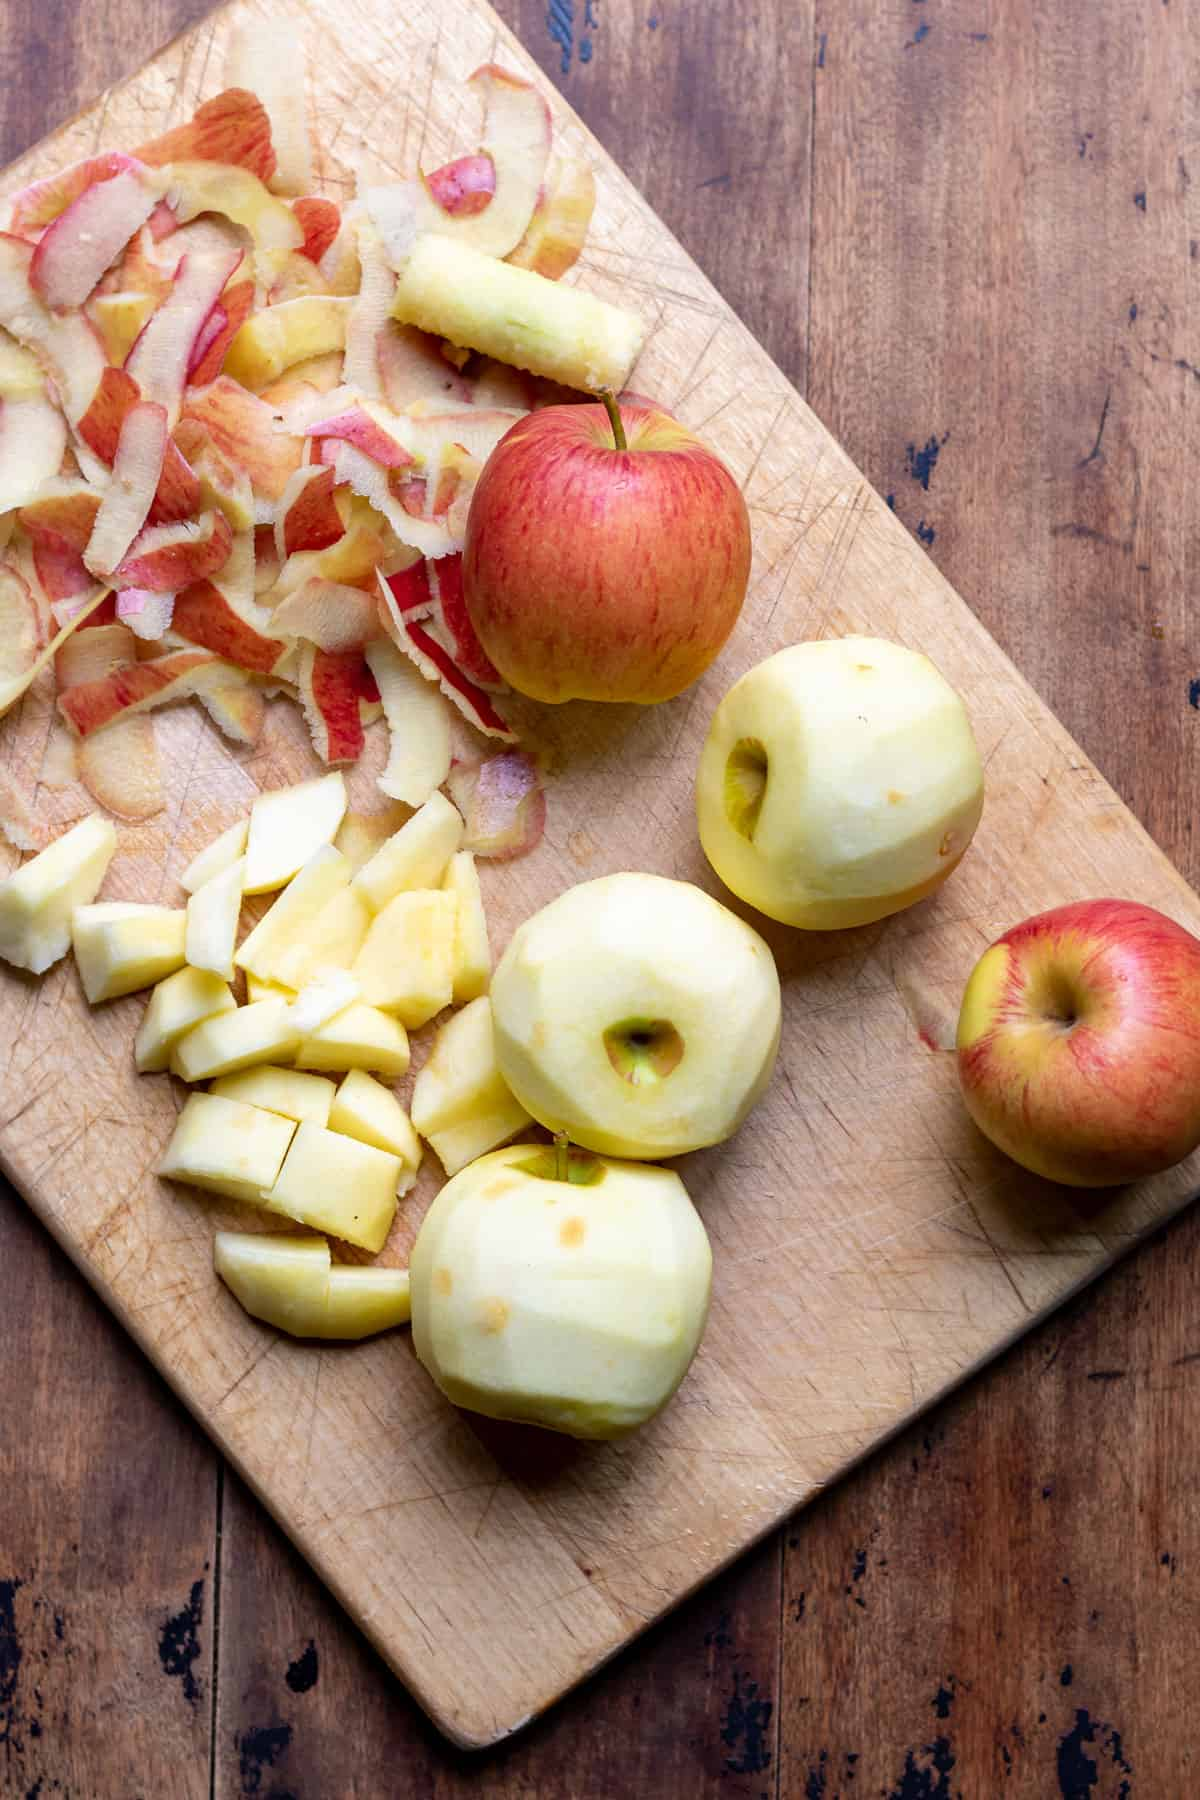 Peeling and chopping apples.